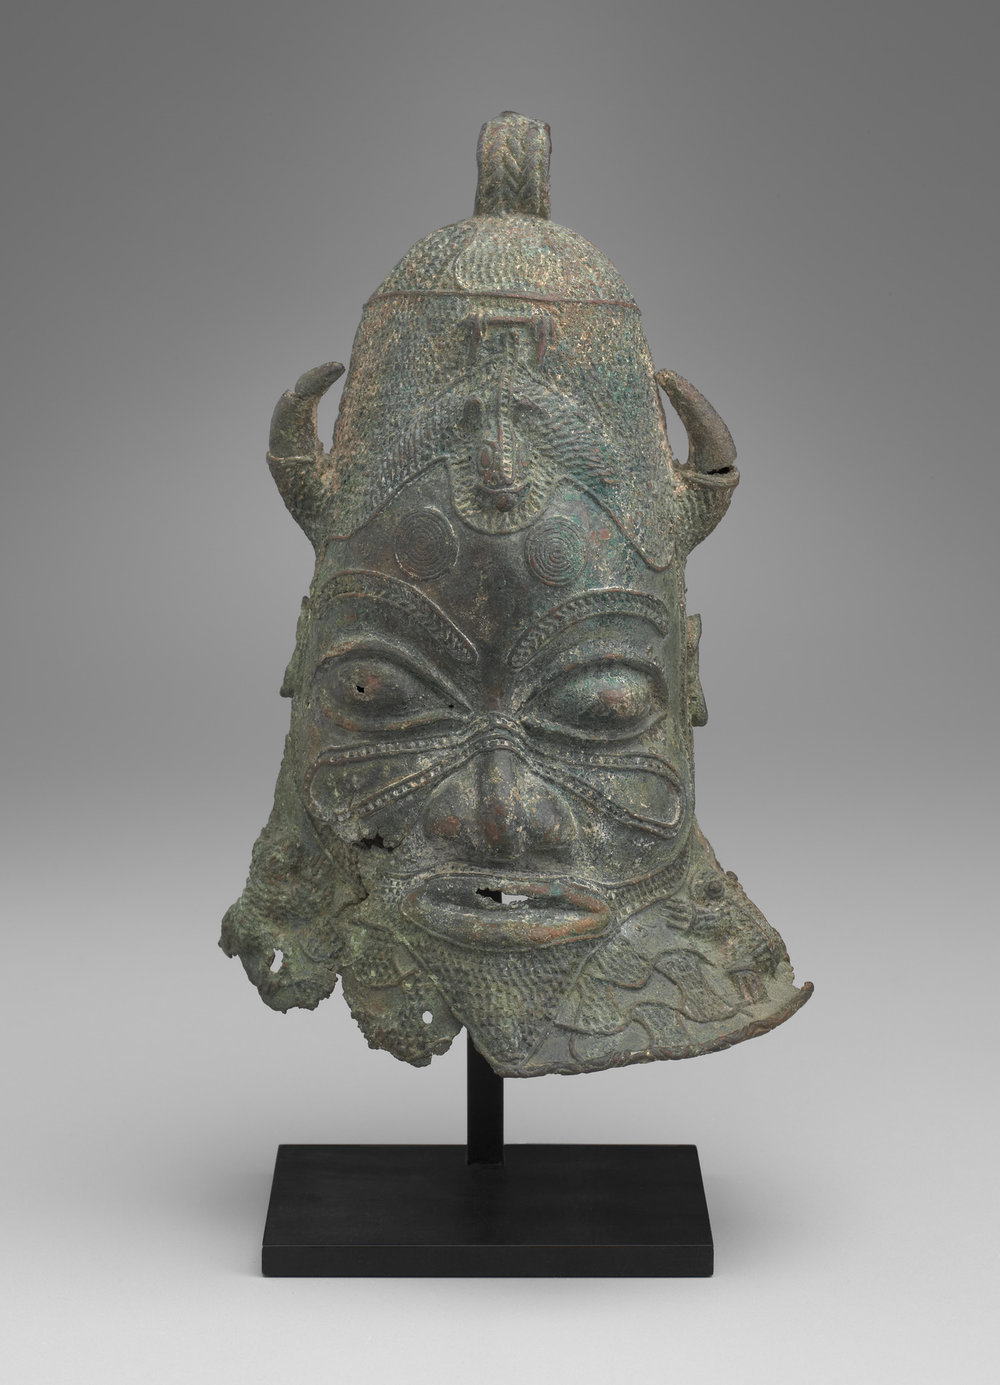 Bell in the Form of a Human Head,  13th–15th century, copper alloy (20 x 13 x 8 cm), Yale University Art Gallery, Charles B. Benenson, B.A. 1933, Collection.